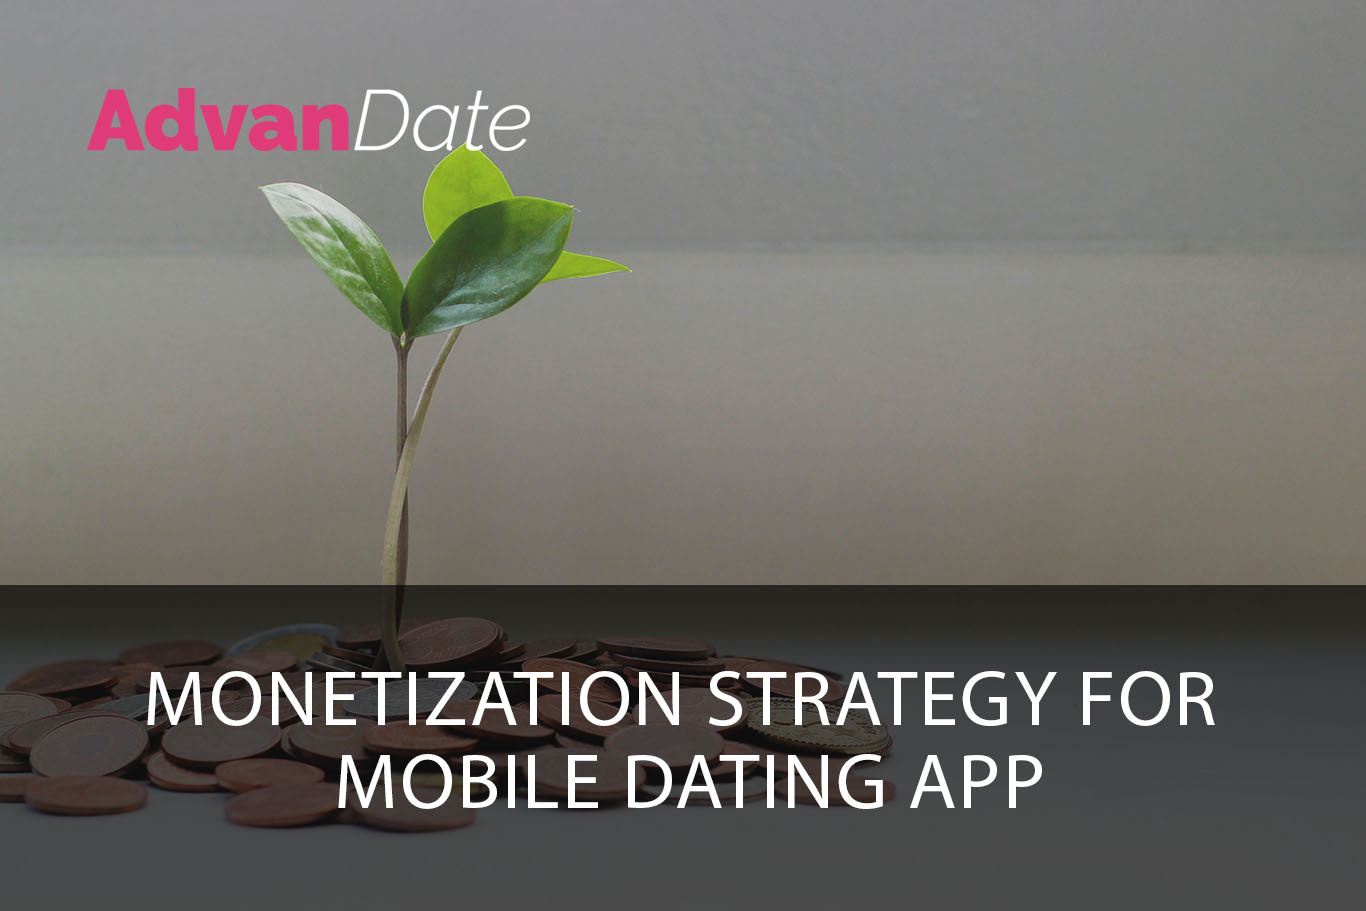 Monetization Strategy for mobile dating app